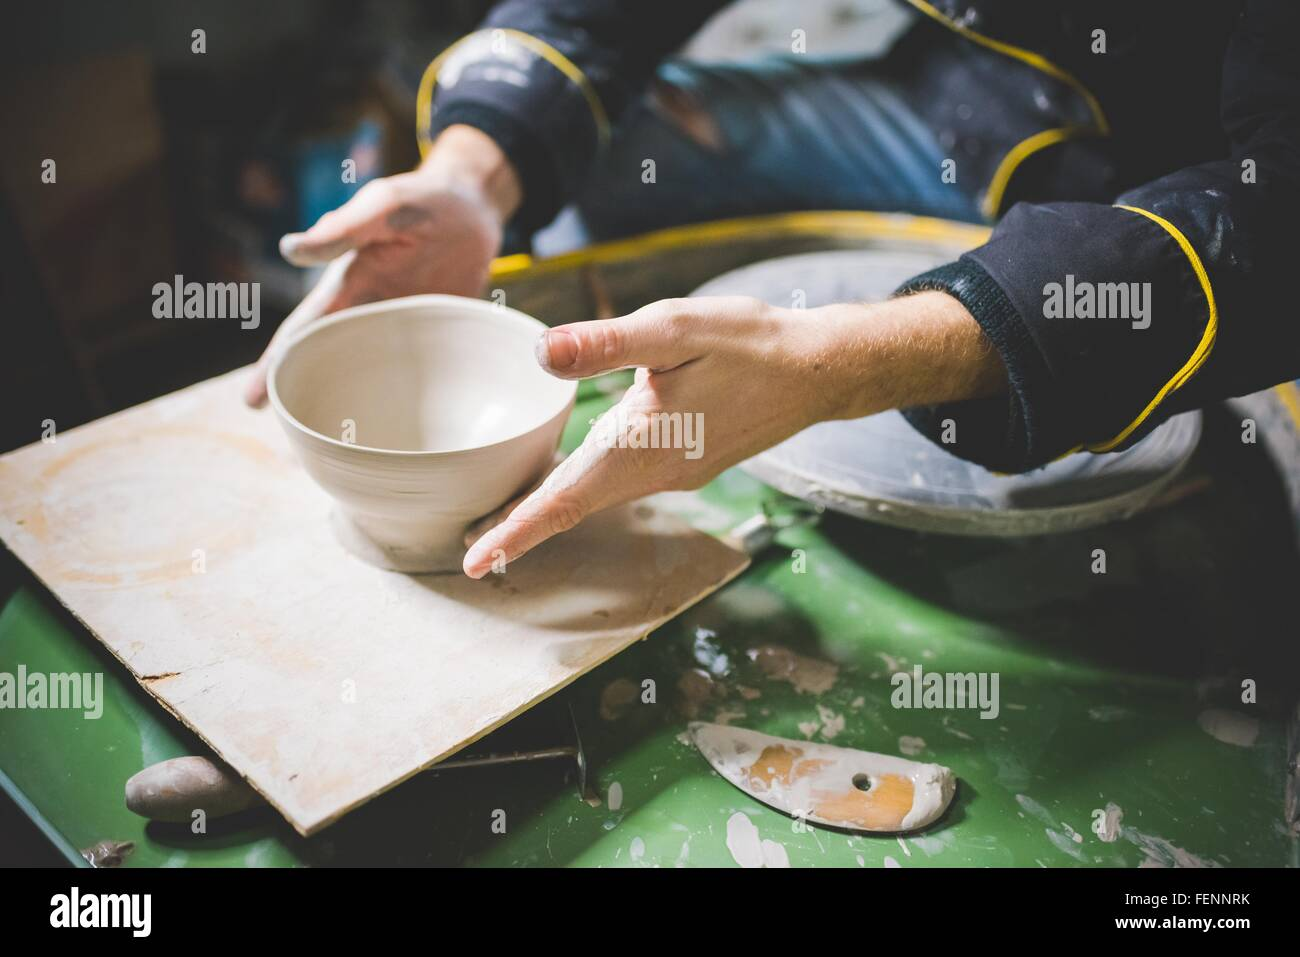 Cropped view of mid adult man sitting at potters wheel holding clay pot - Stock Image